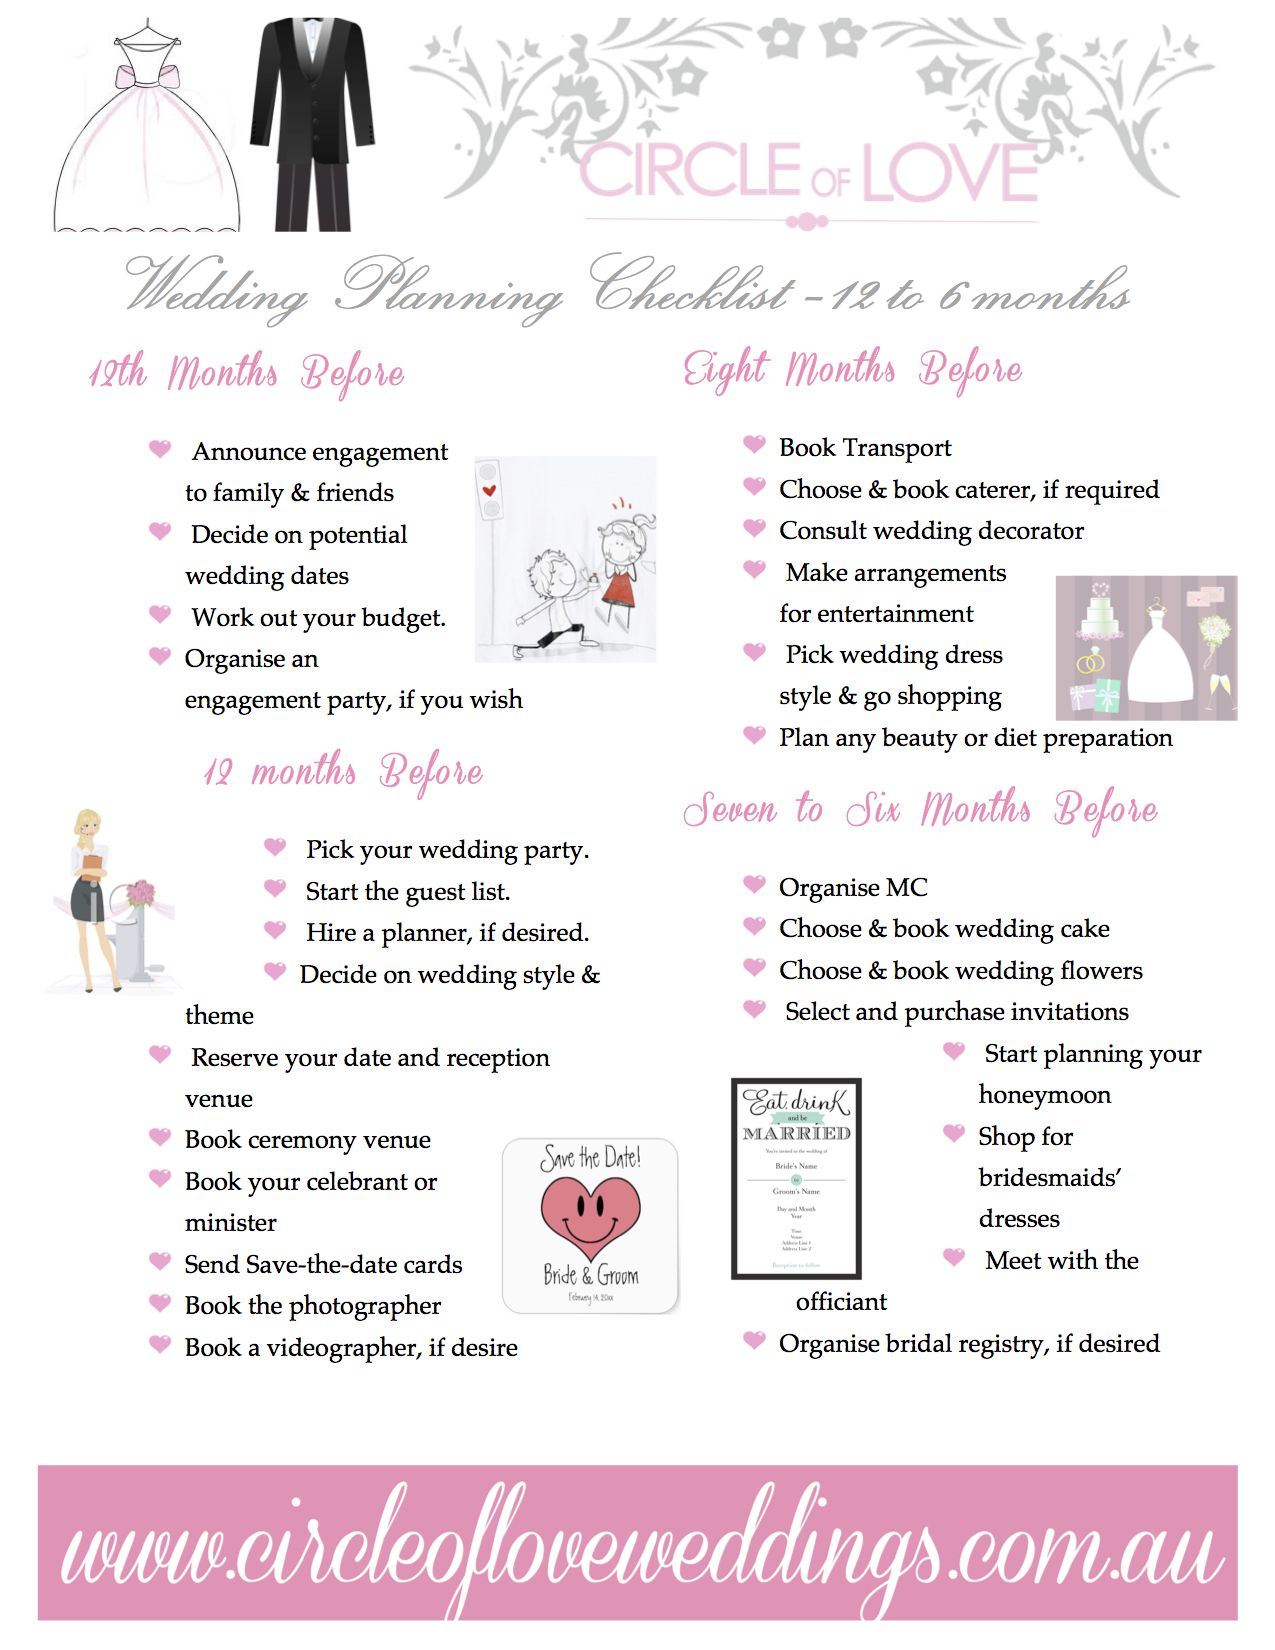 1 Wedding Planning Checklist 12 To 6 Months Before Our Free Timeline Checklists Created By Www Circleofloveweddings Au